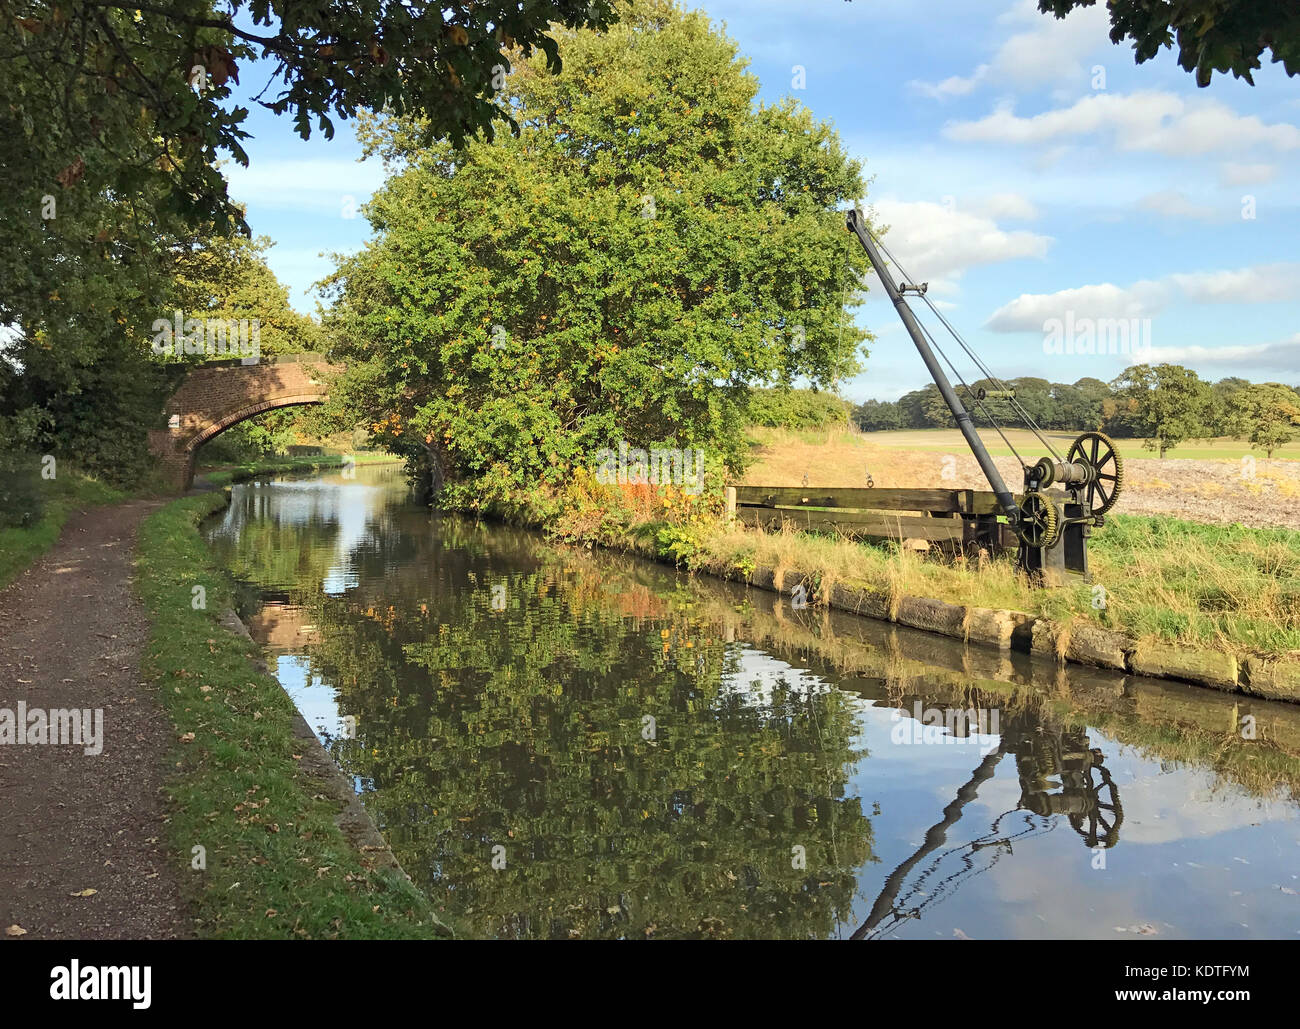 Lifting gear, Bridgewater Canal, Moore, Cheshire, England, UK - Stock Image